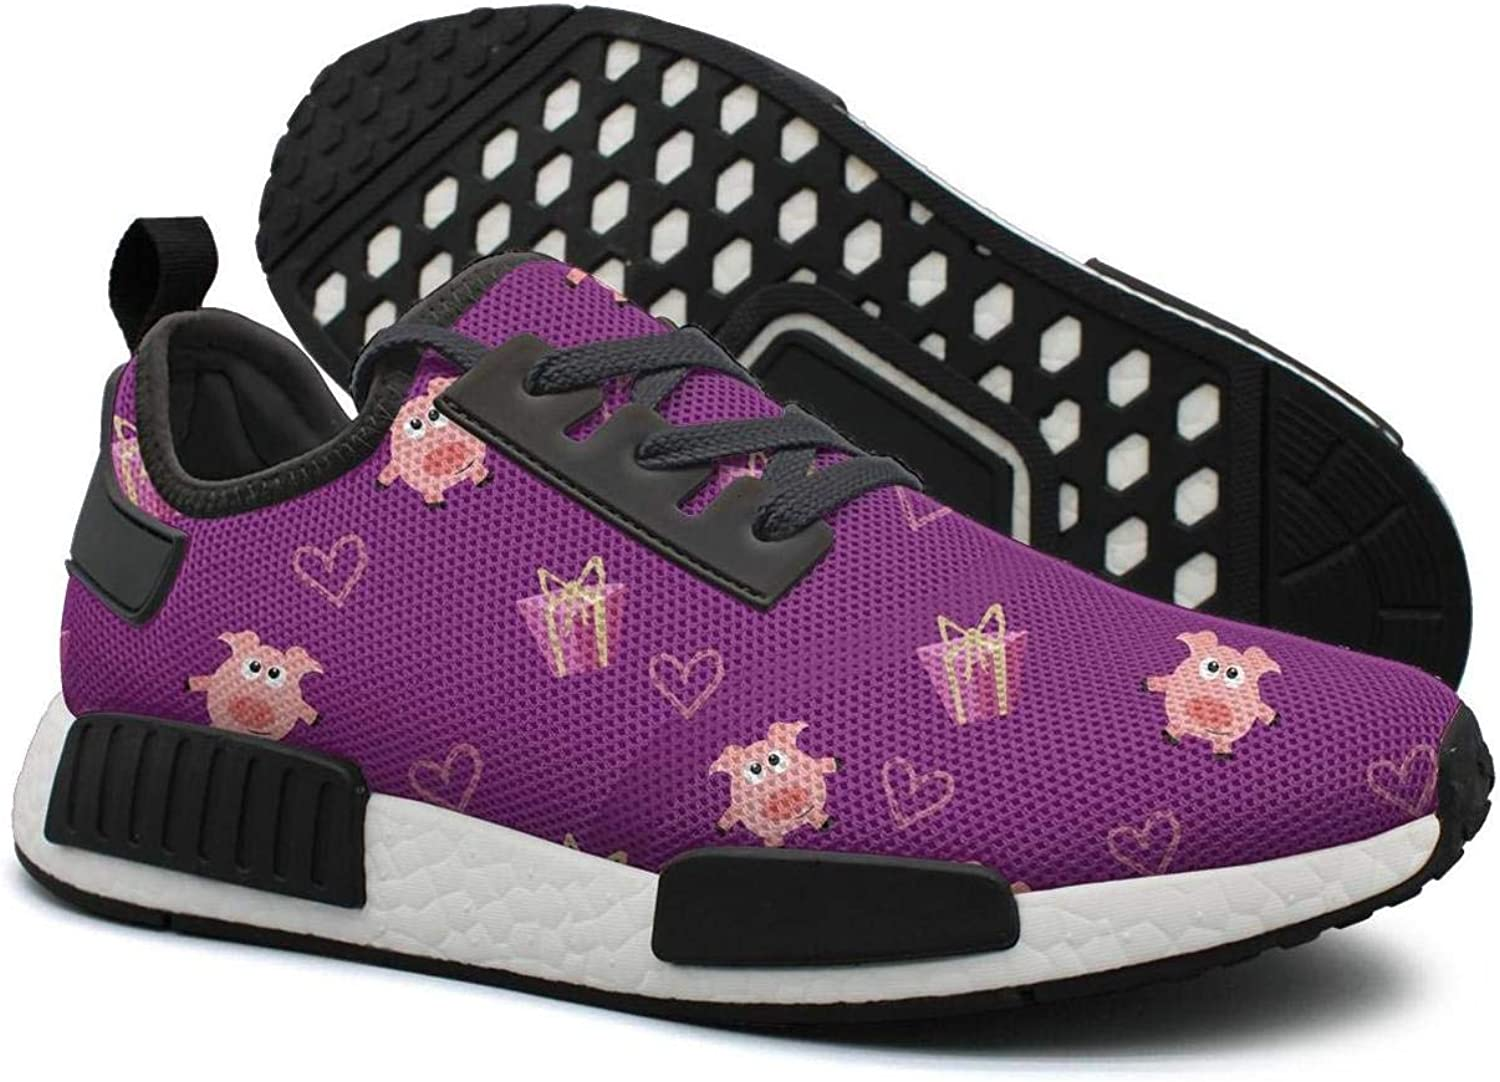 Purple Romantic Pig and Gift Box Women's Cool Lightweight Sneaker Gym Outdoor Running shoes